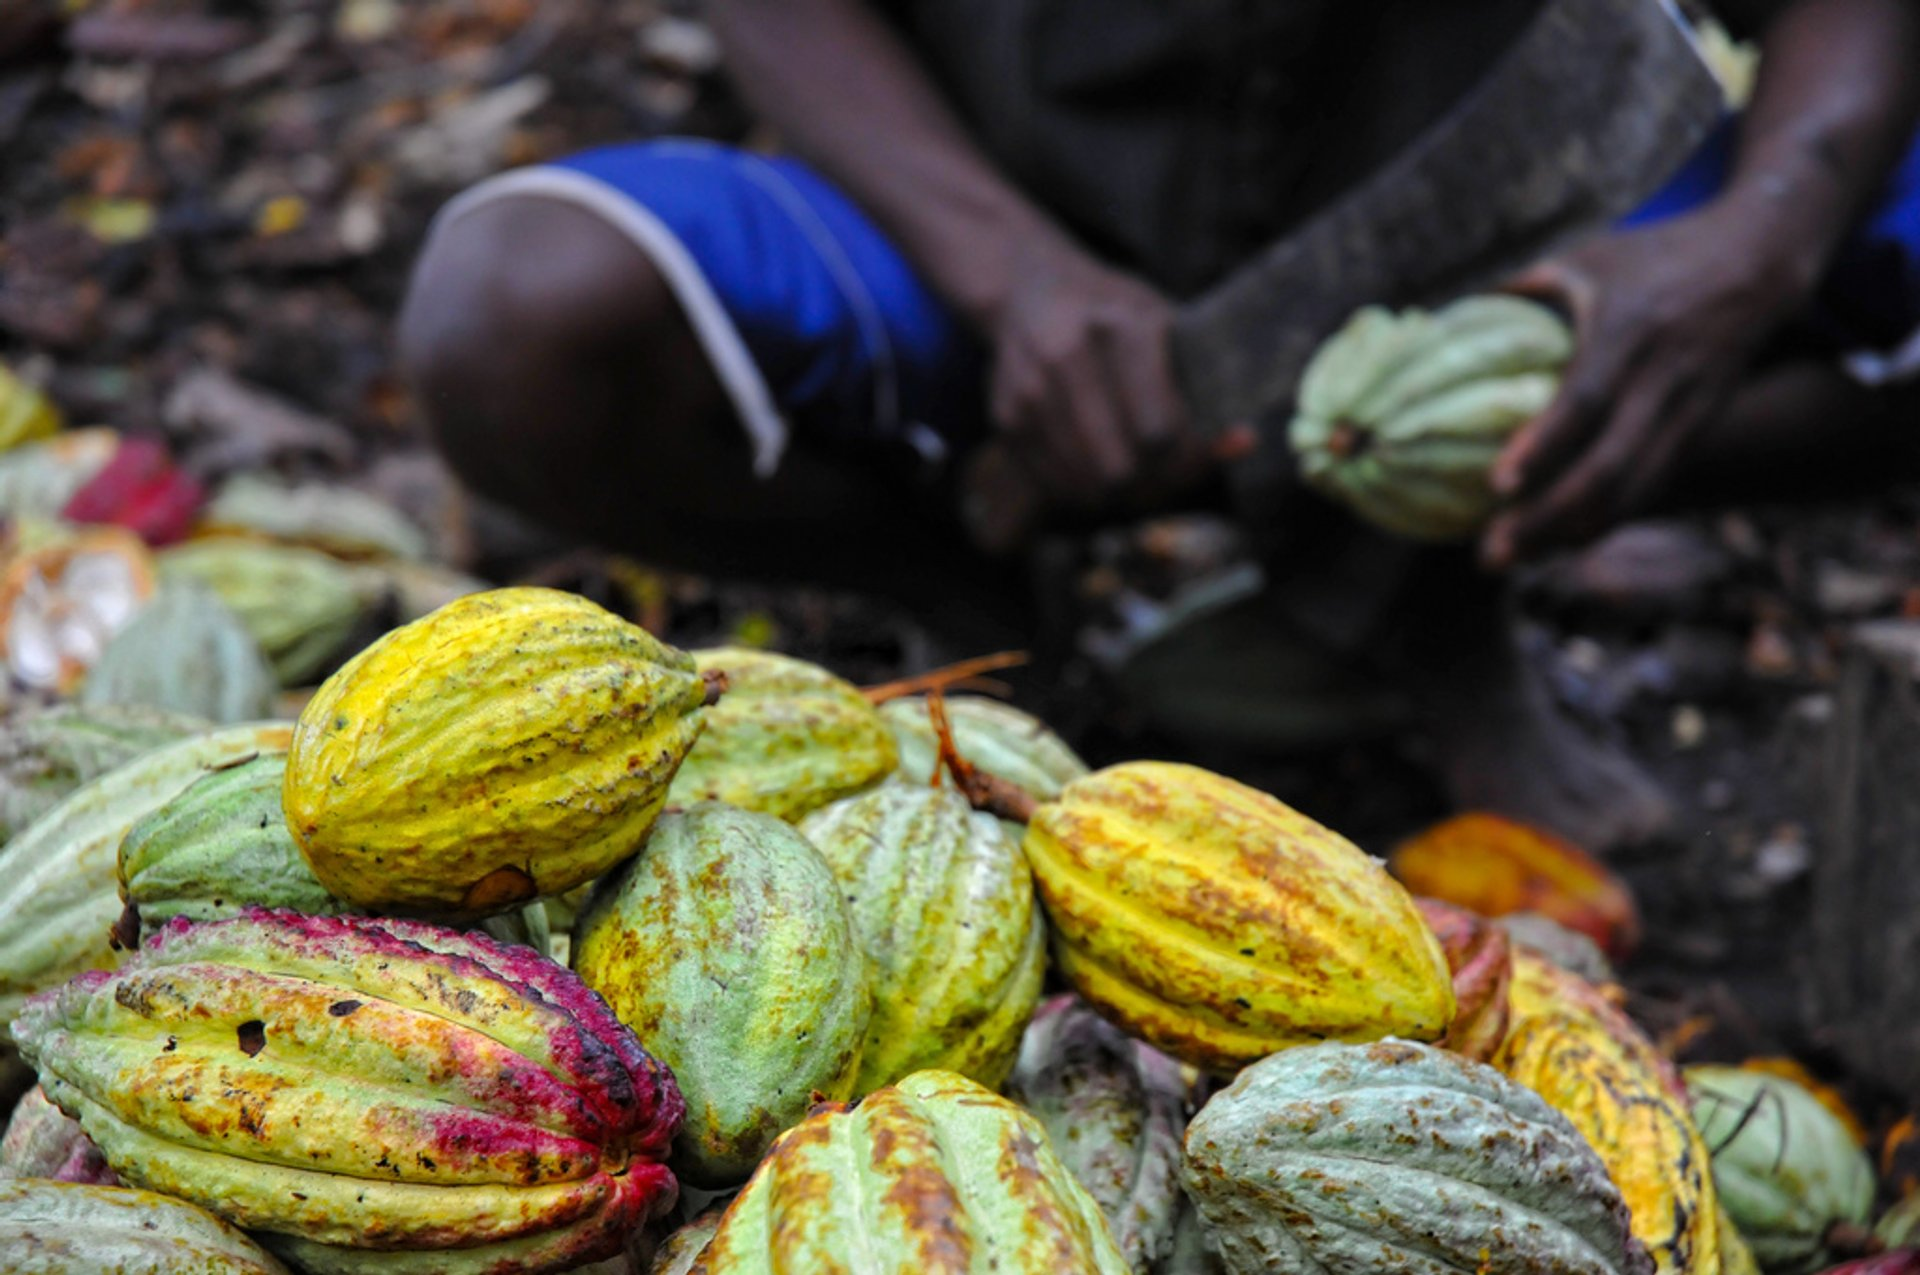 Cutting the cocoa pods 2020